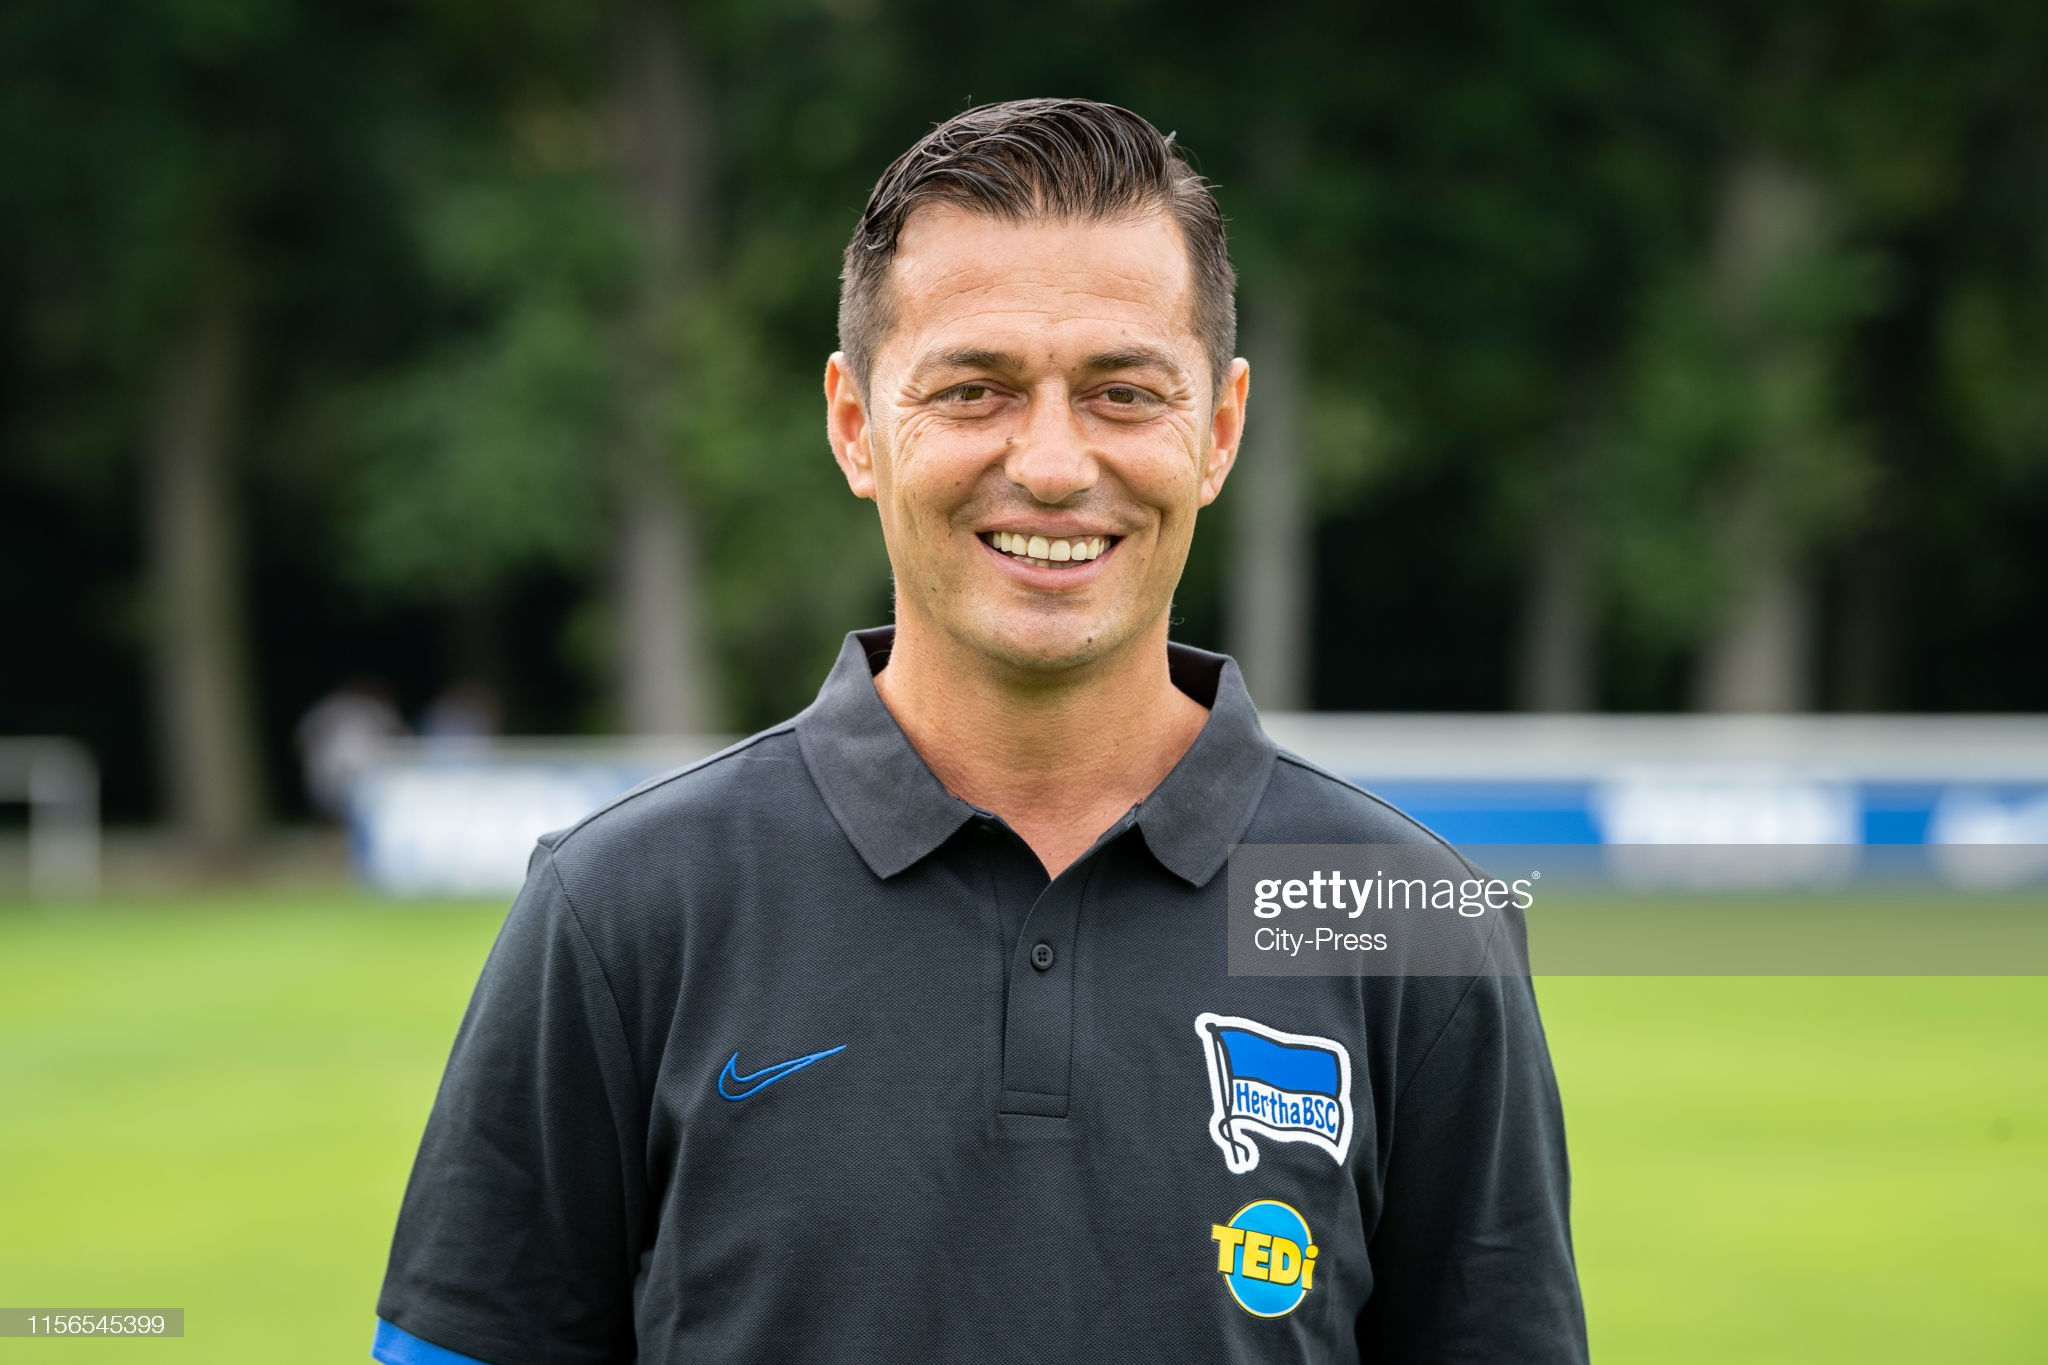 https://media.gettyimages.com/photos/coach-ante-covic-of-hertha-bsc-during-the-team-presentation-on-july-picture-id1156545399?s=2048x2048